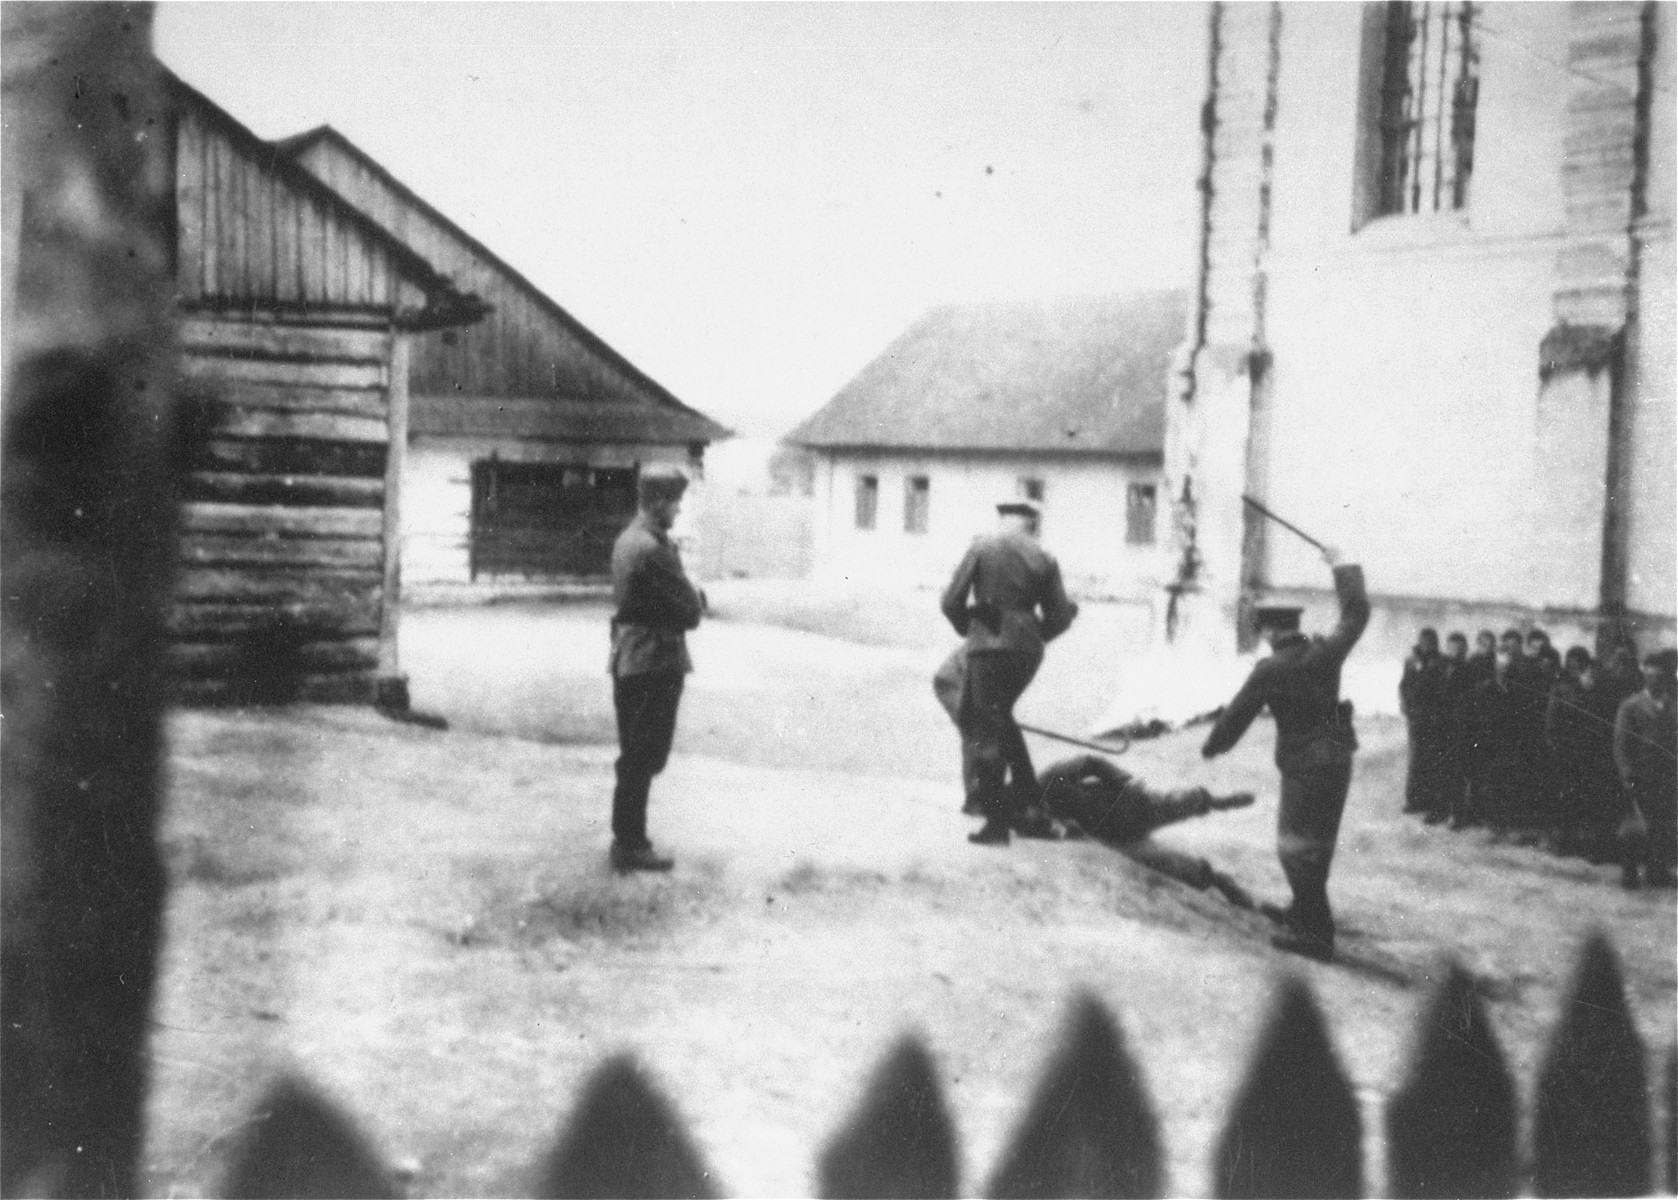 Camp guards beat a prisoner at the Cieszanow labor camp.